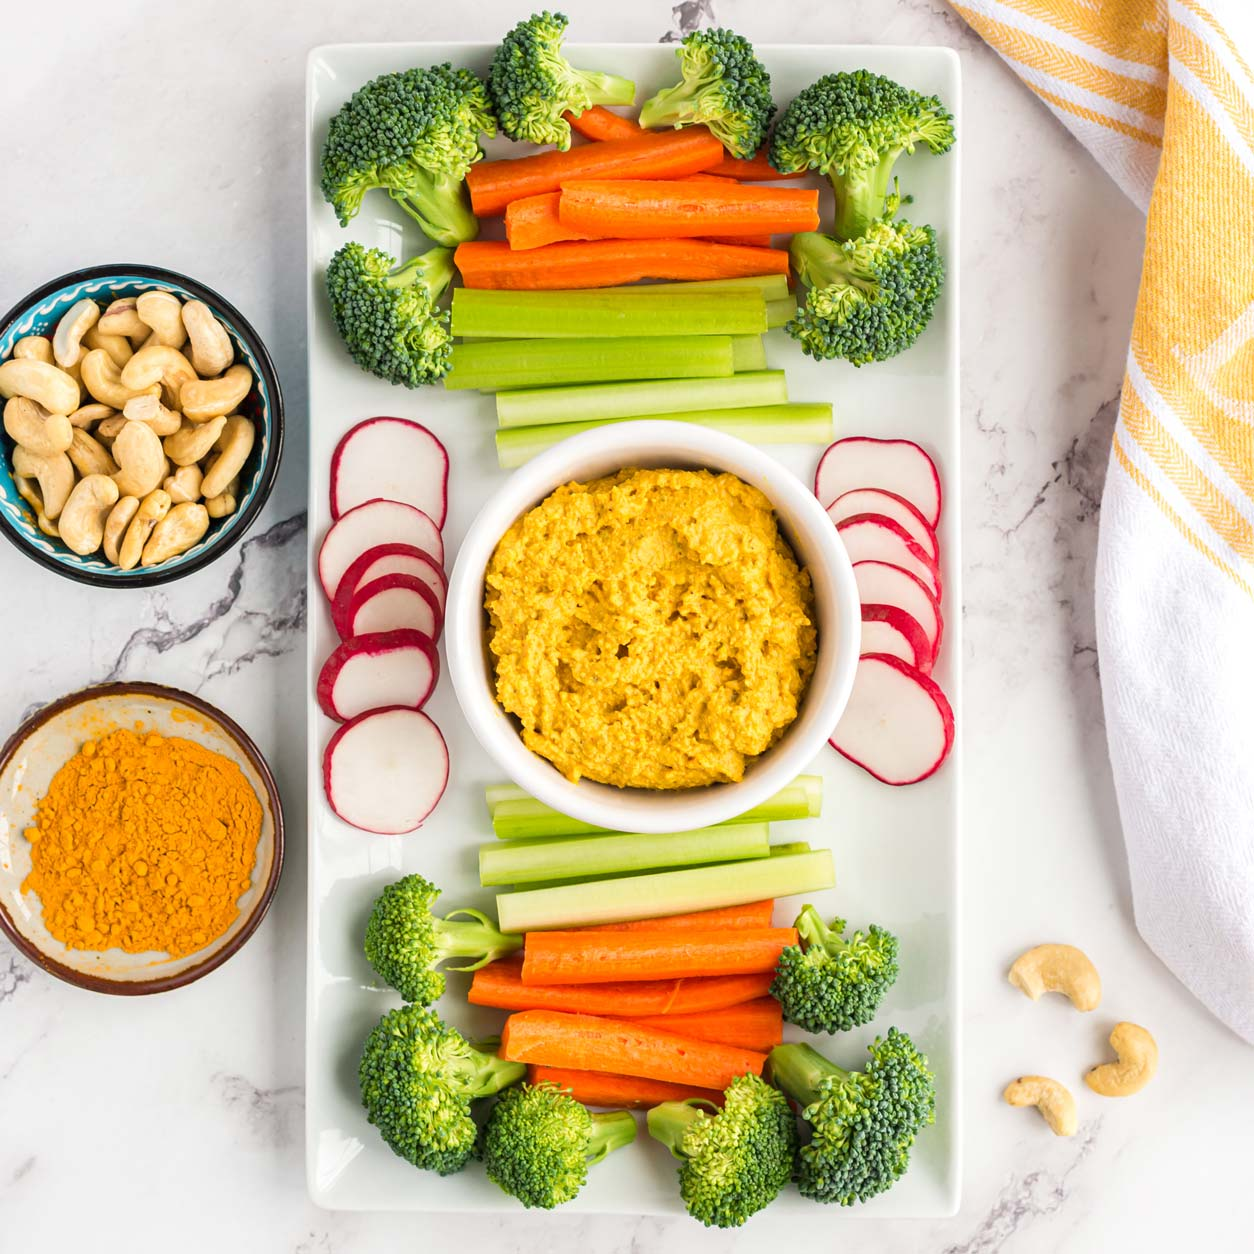 Easy plant based recipes: Turmeric Cashew Cheese